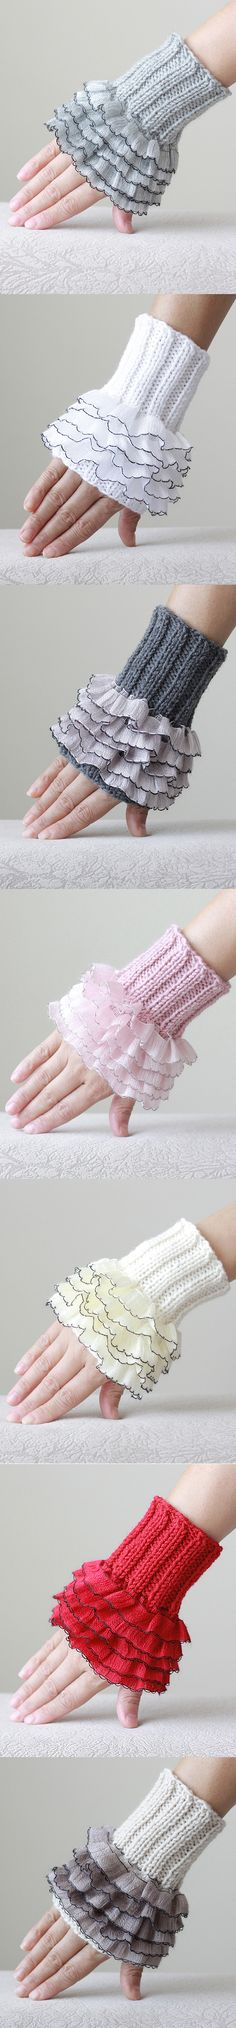 Knit gloves, Cozy gloves, Ruffled gloves, knitted wrist cuff